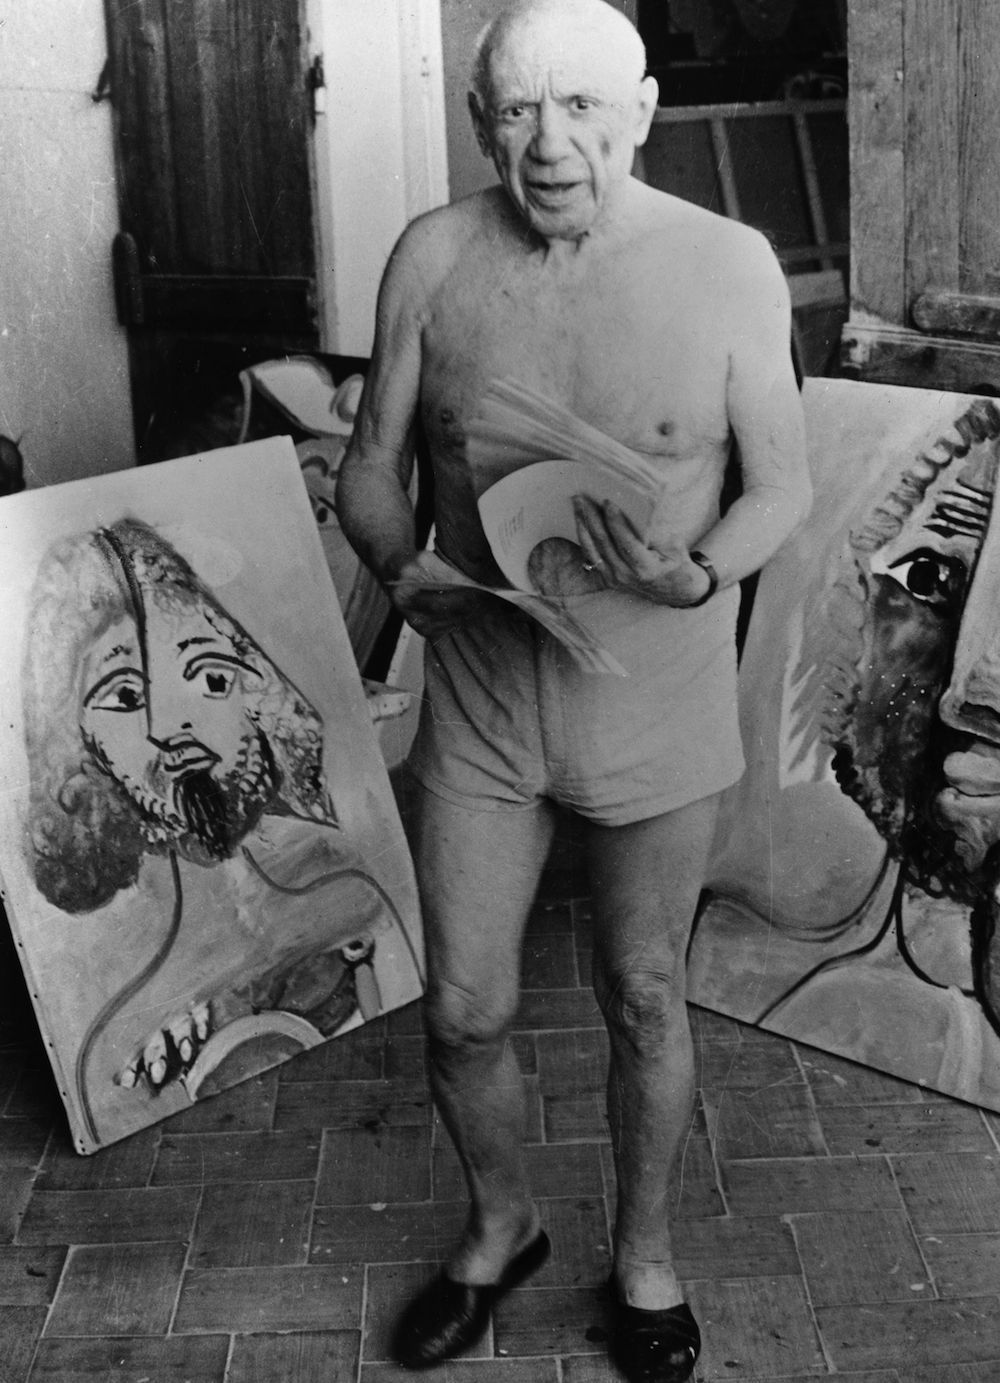 204d09e5b52d 15th February 1973  Spanish artist Pablo Picasso (1881 - 1973) with some of